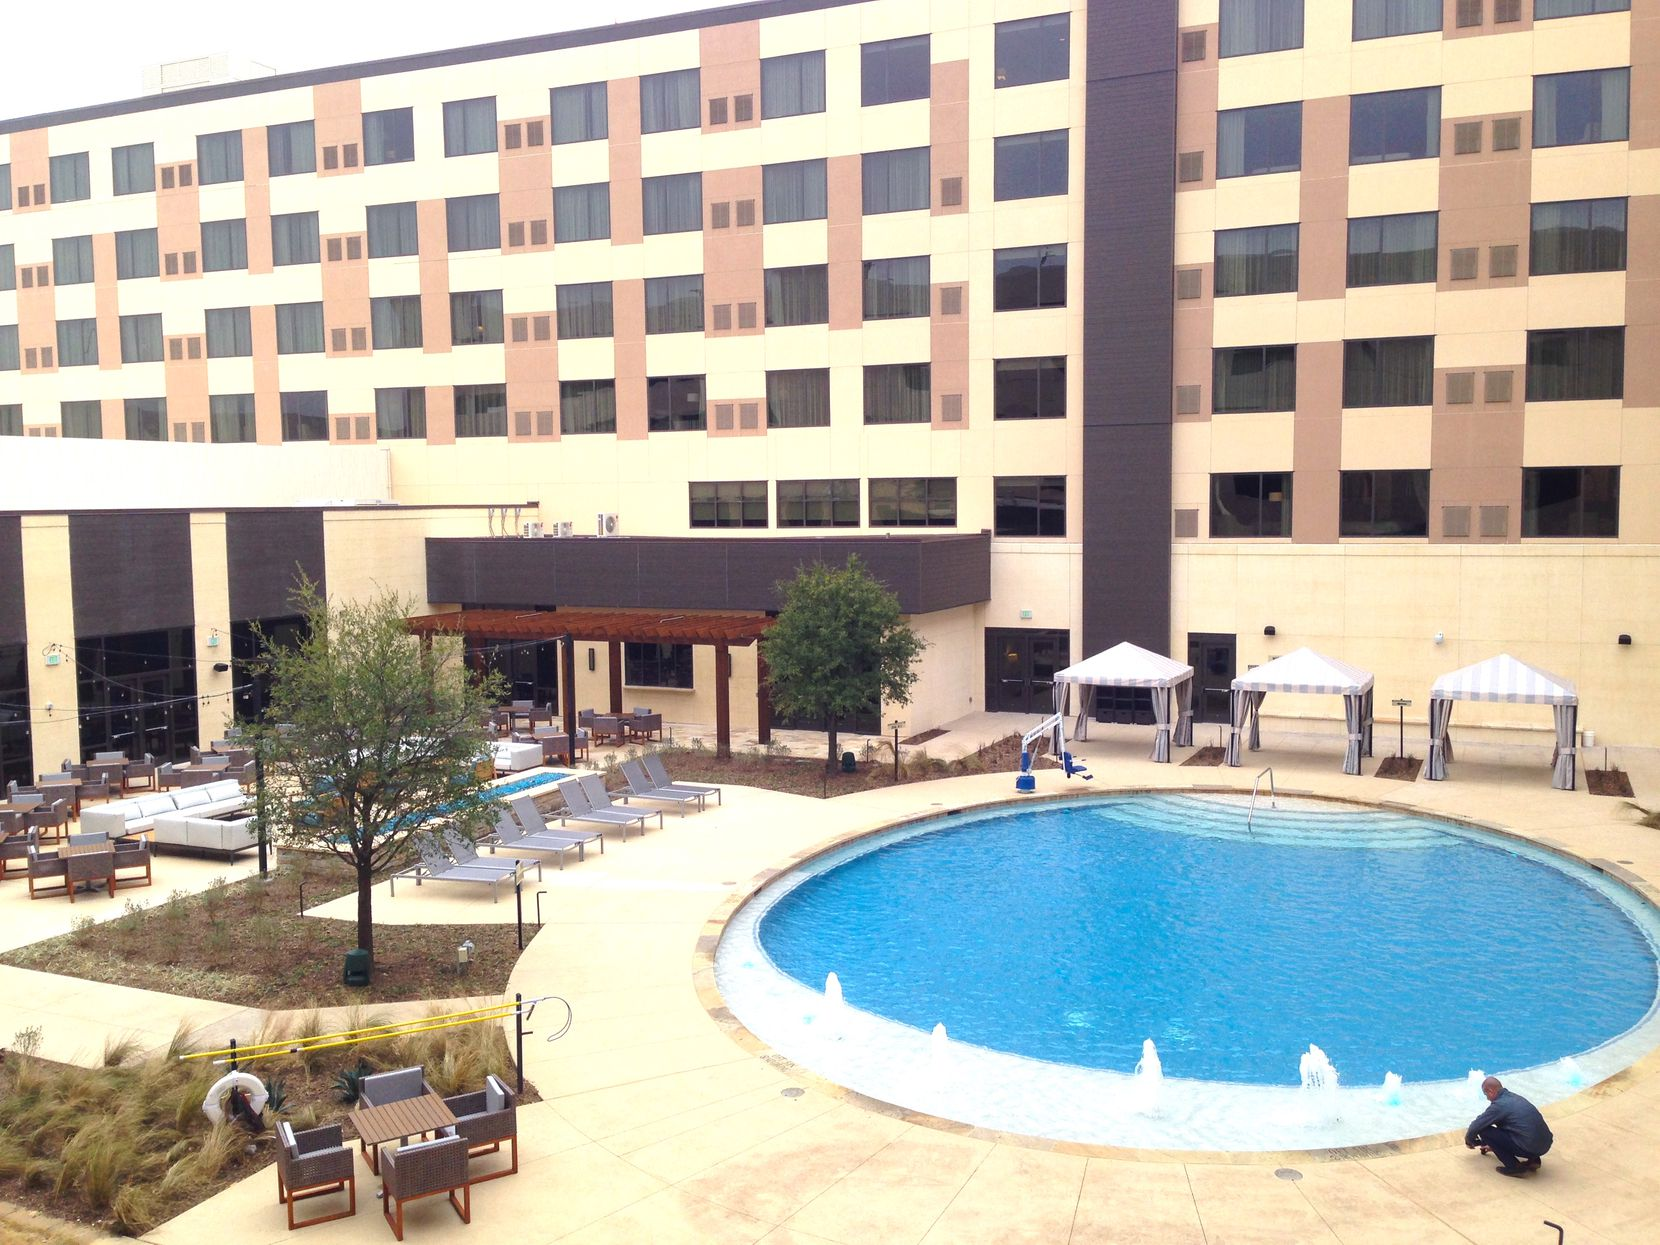 The 300-room Delta by Marriott Hotel is the brand's first location in North Texas.